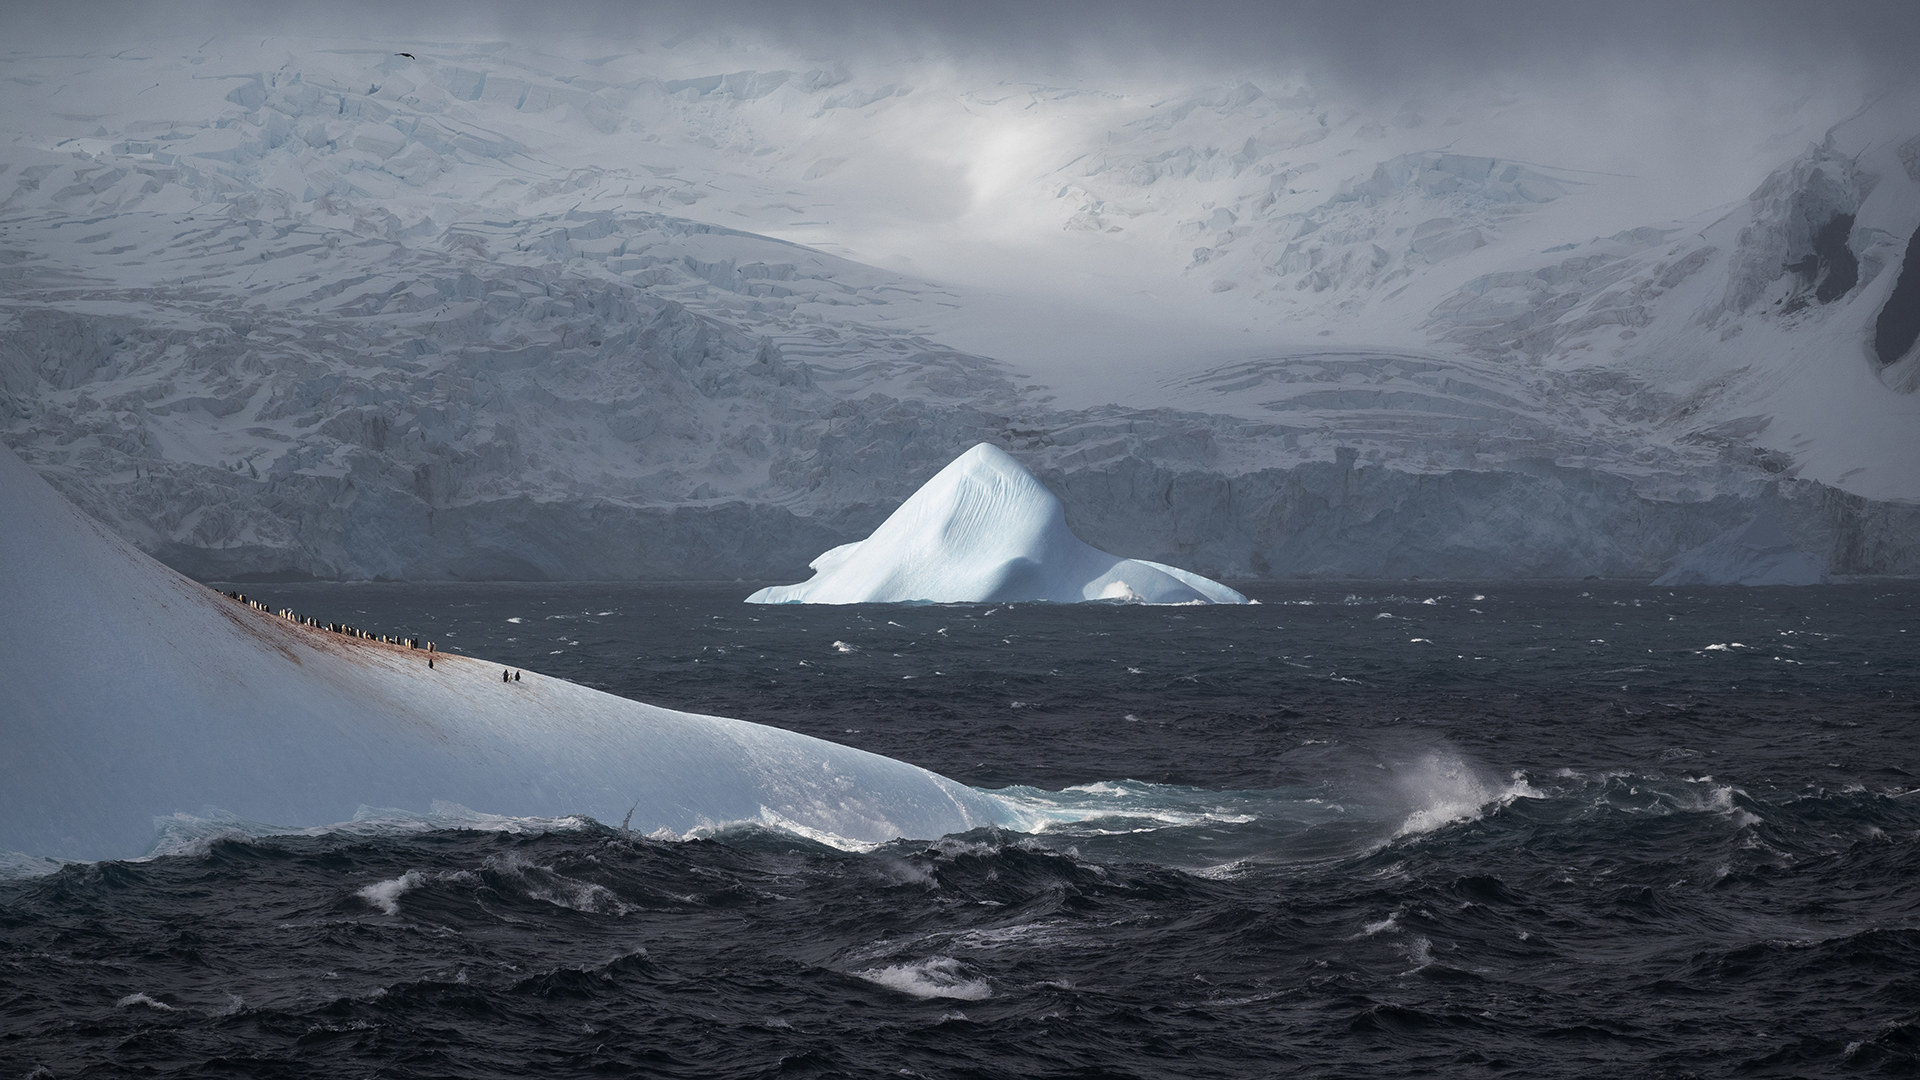 People standing on the side of a glacier, with the ocean roaring.